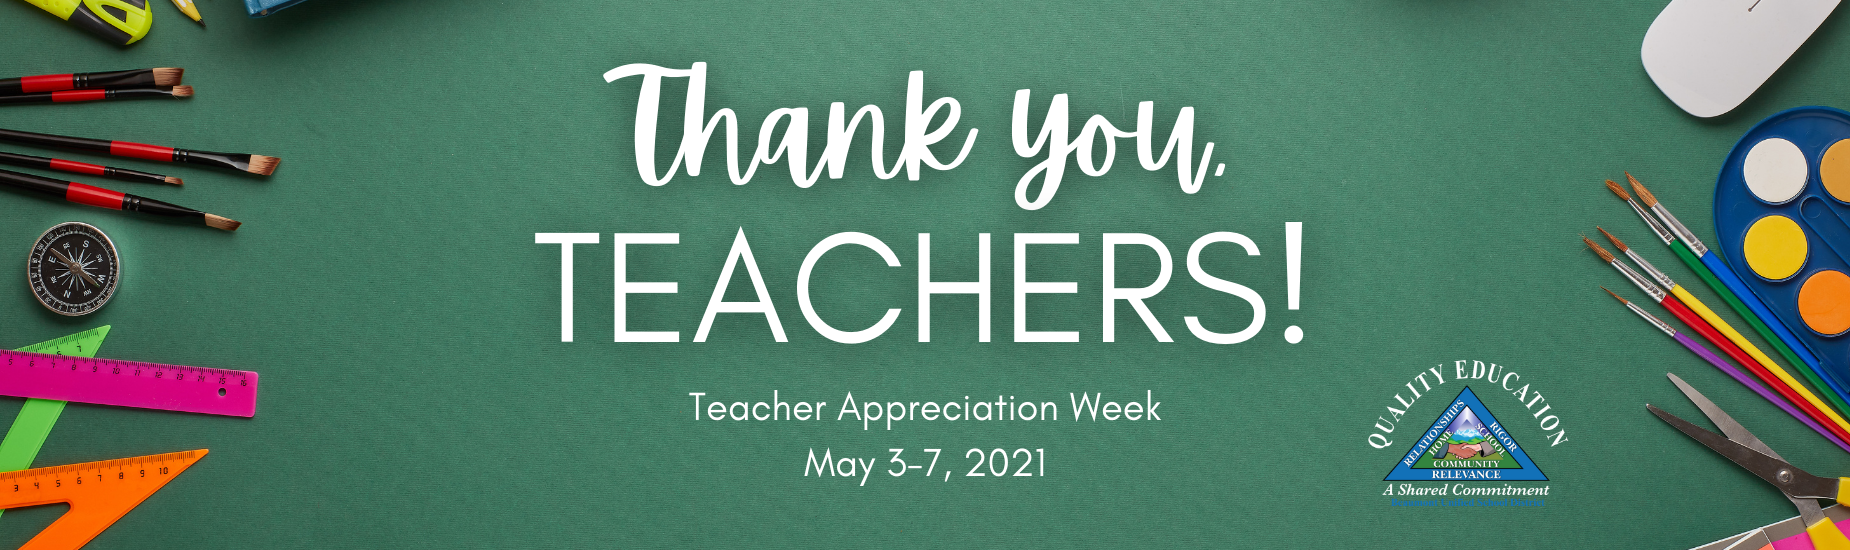 Teacher Appreciation Banner with Paint Brushes, Water Colors, Rulers, Scissors